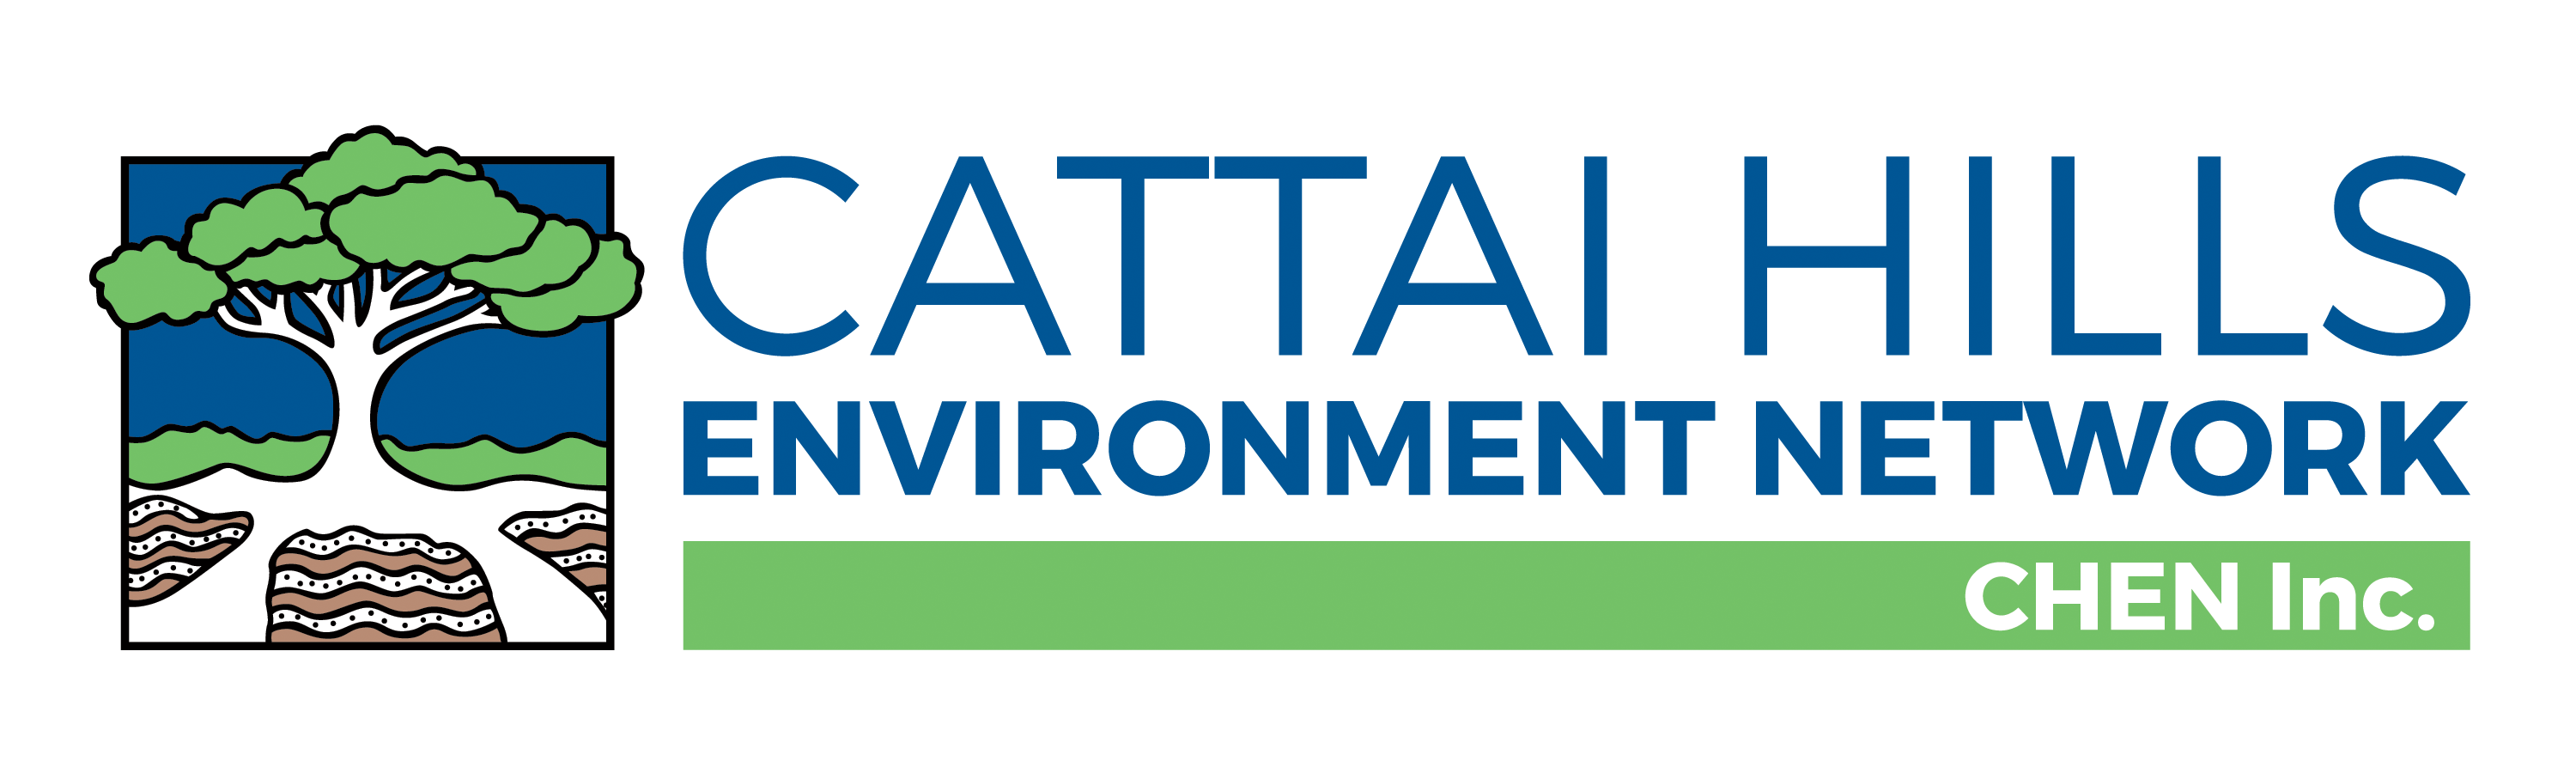 Cattai Hills Environment Network